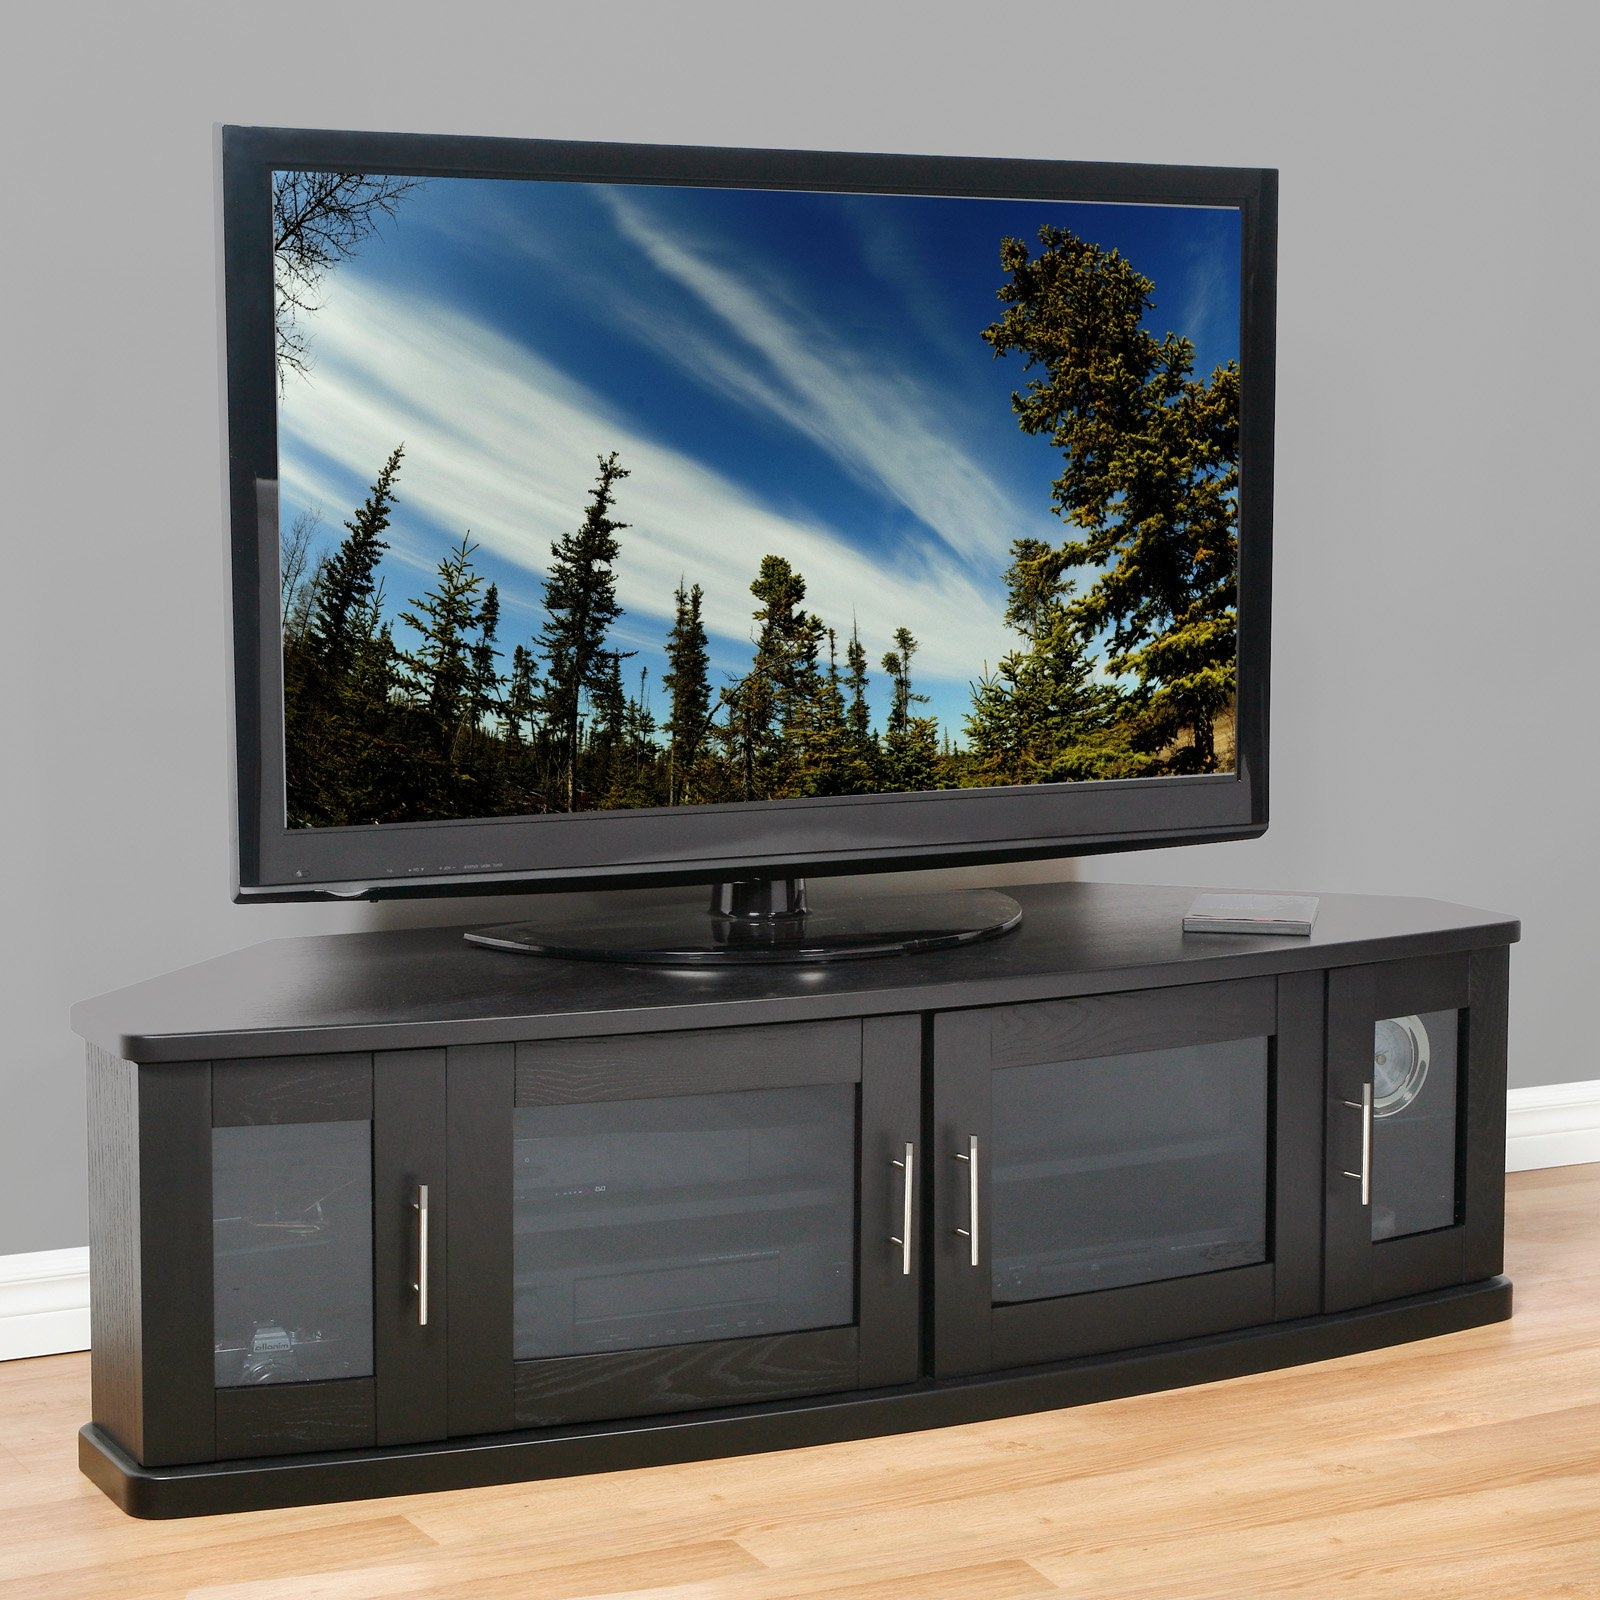 Most Recently Released Annabelle Cream 70 Inch Tv Stands Inside 70 Inch Tv In Living Room – Living Room Ideas (View 16 of 20)